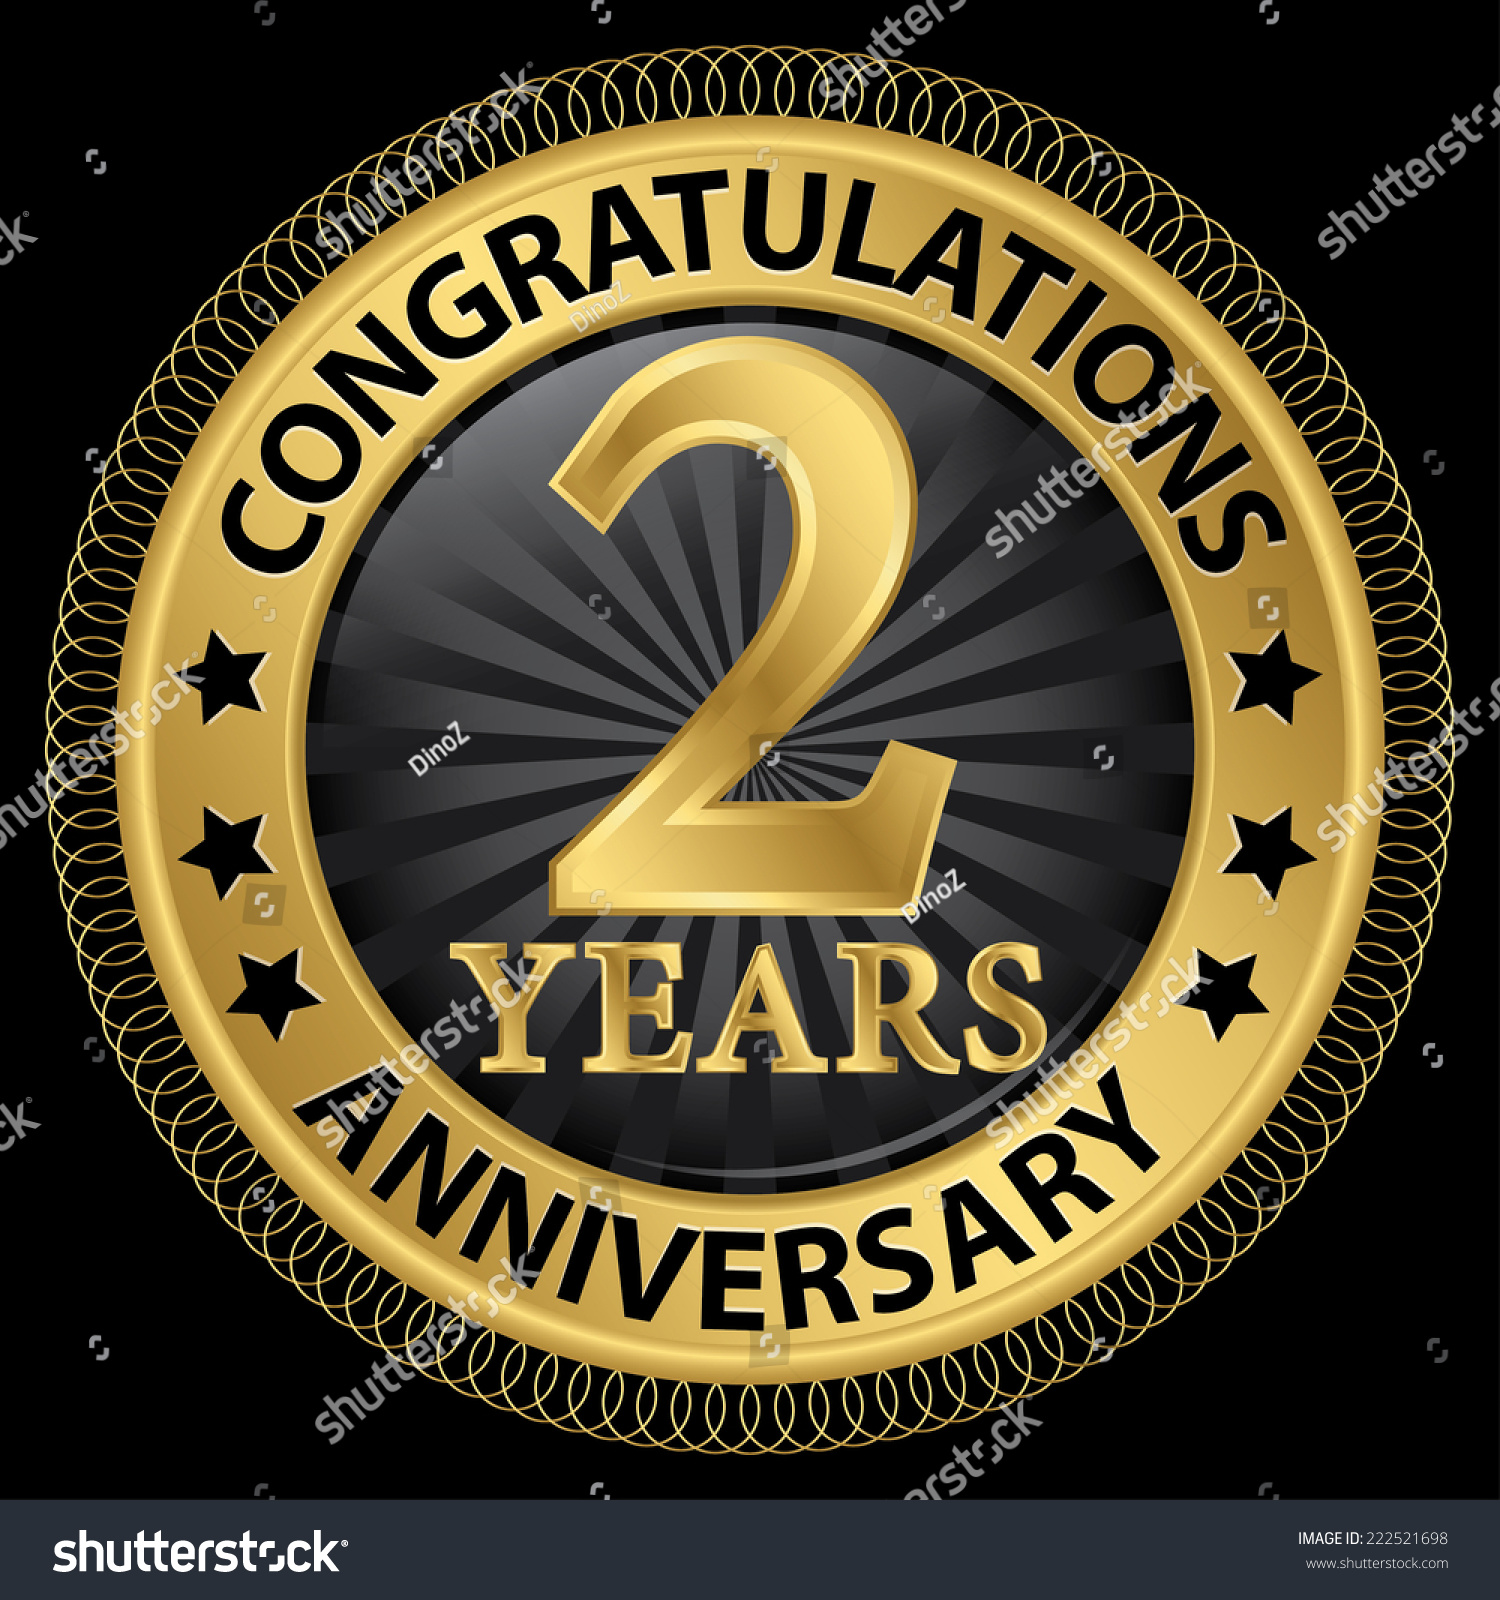 2 years anniversary congratulations gold label with ribbon